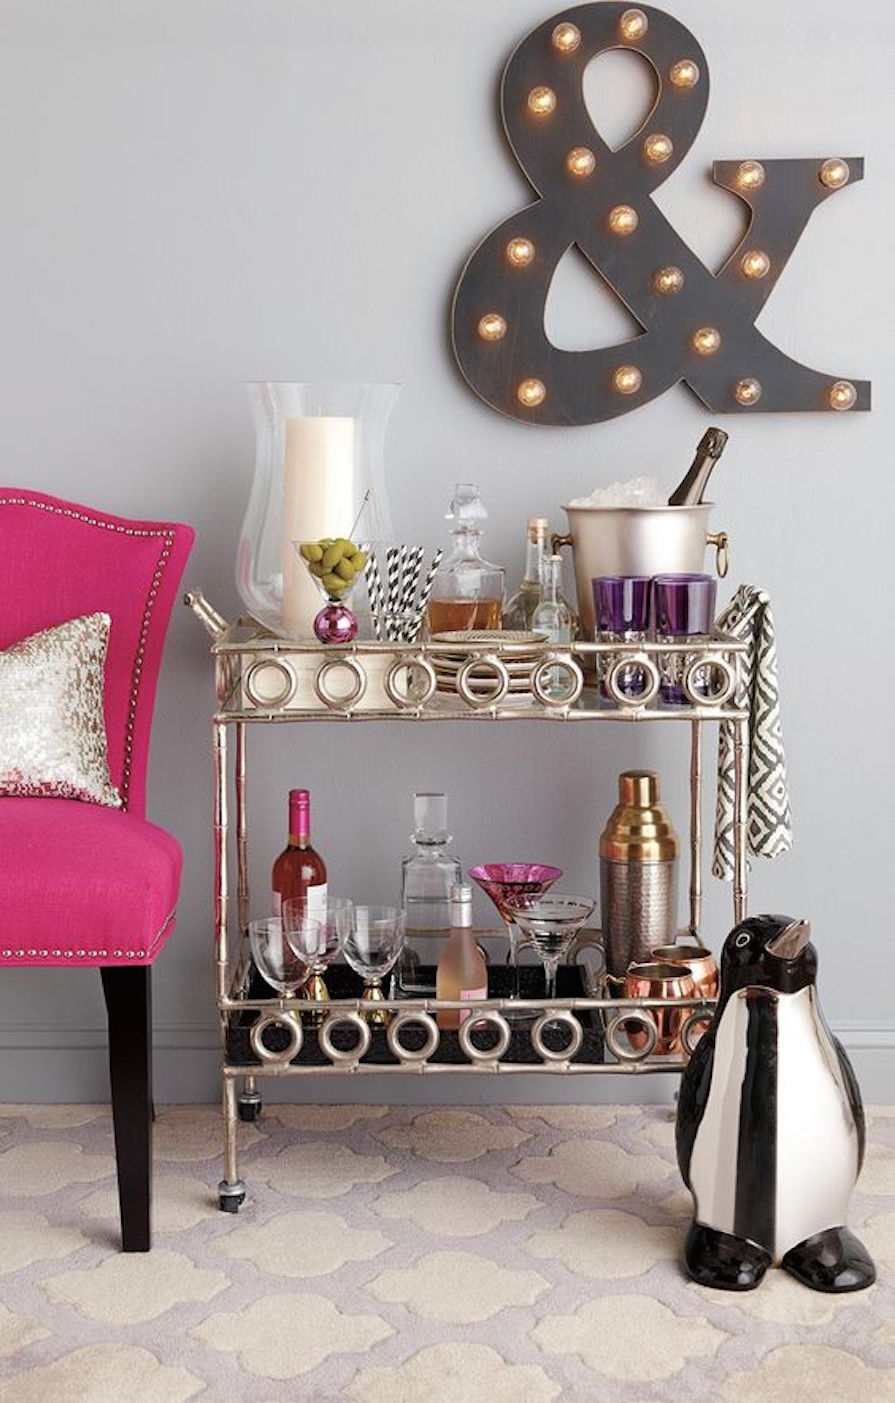 bar-cart-decor-onde-colocar-na-casa-danielle-noce-0